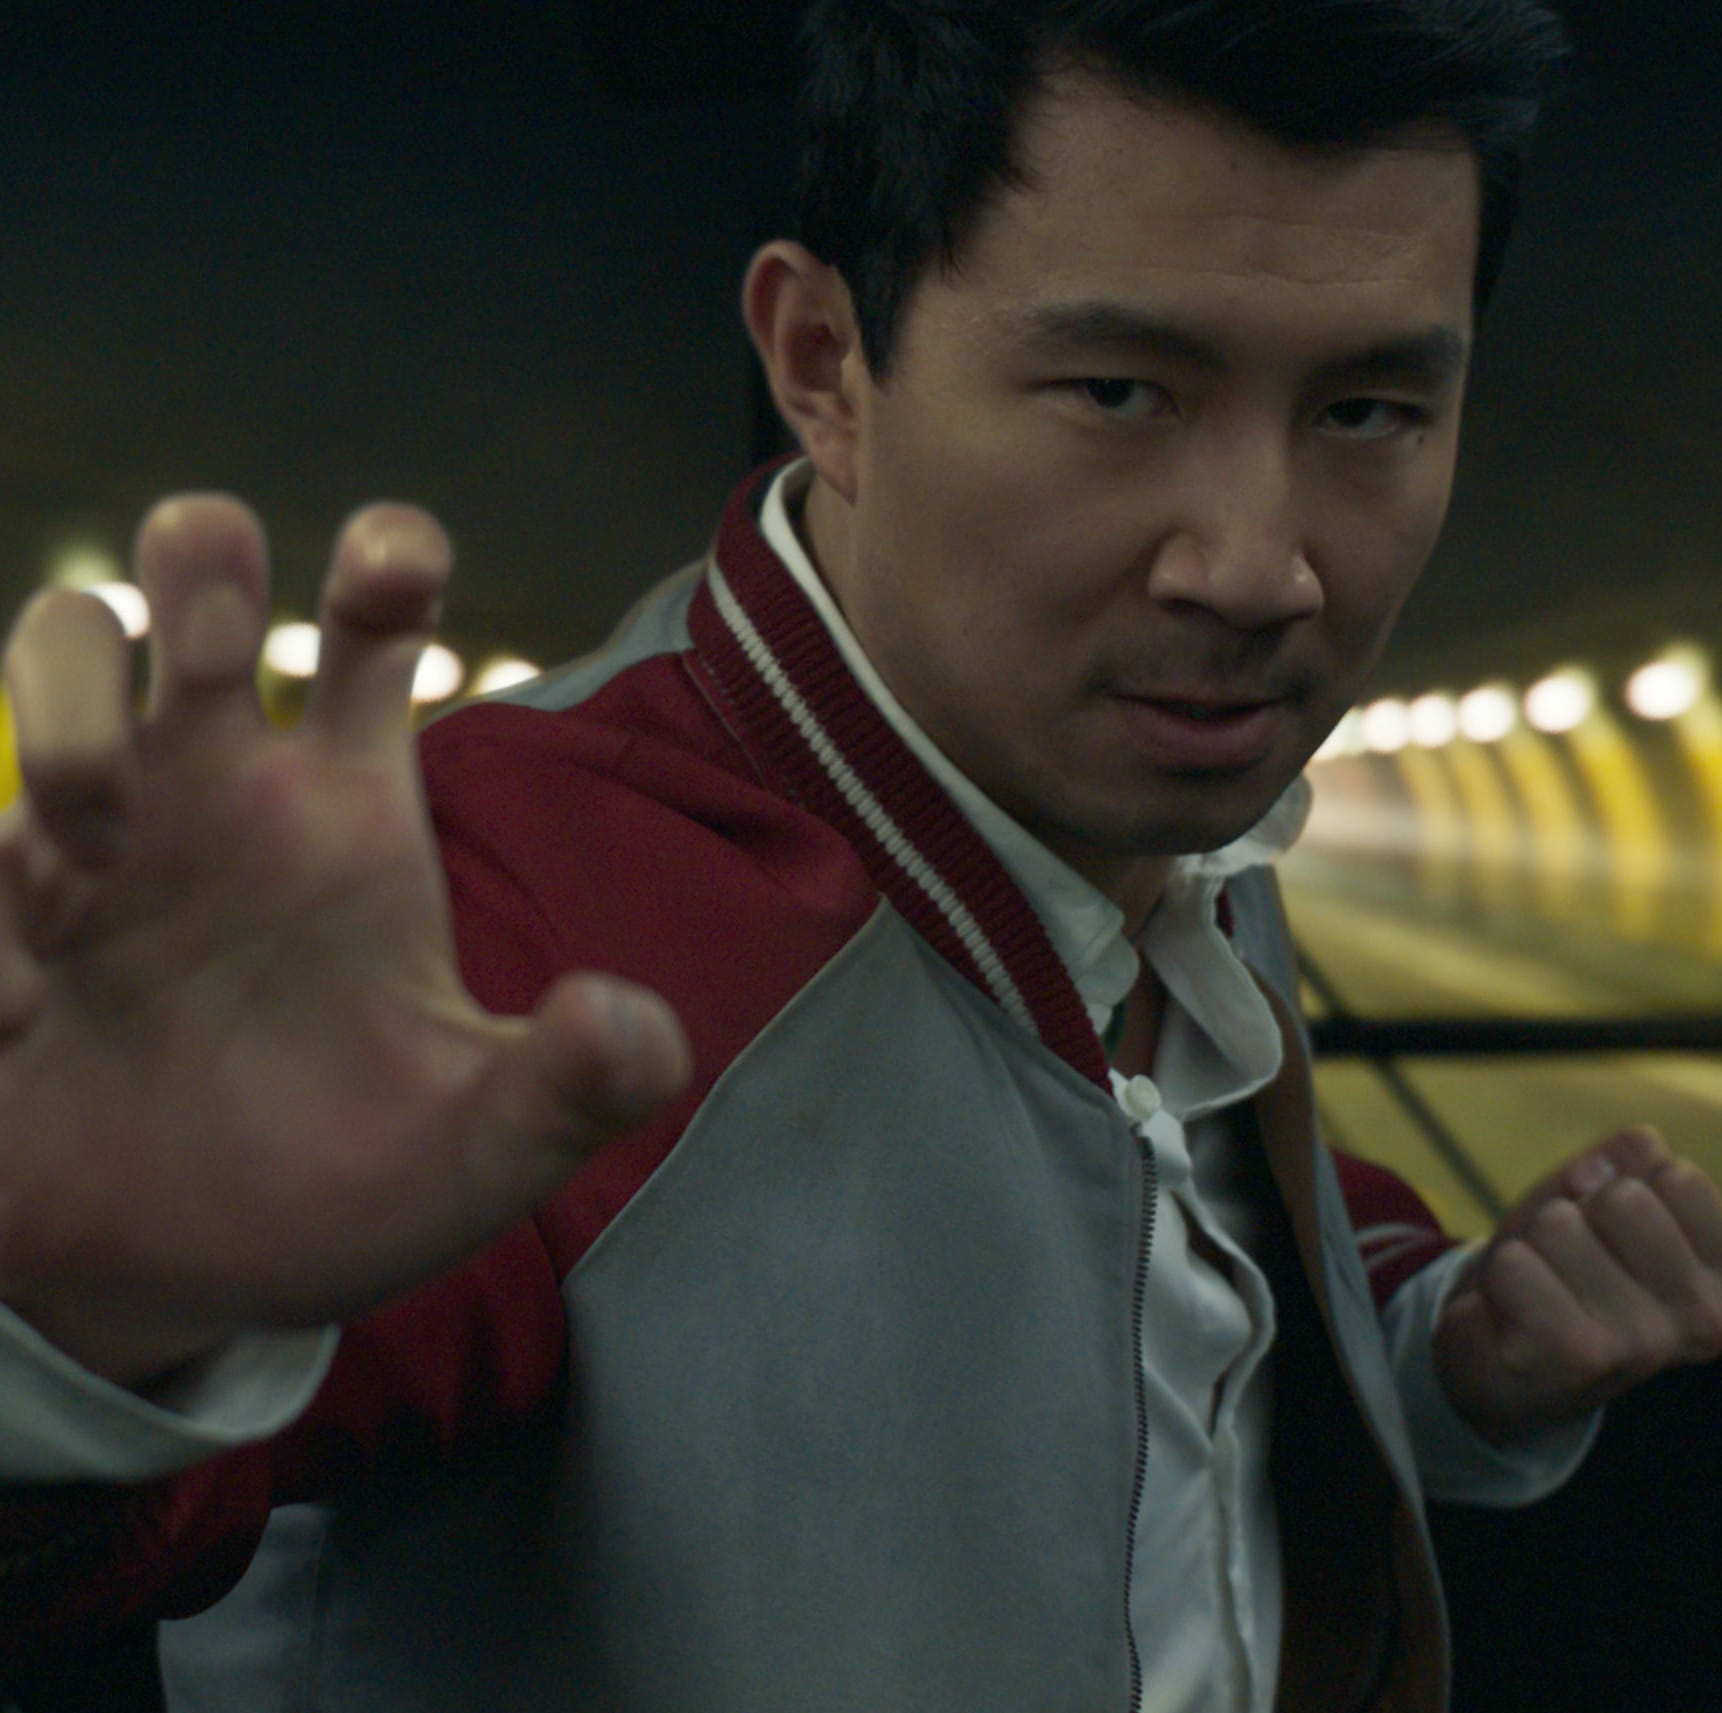 The Cast and Crew of Marvel Studios' Shang-Chi and the Legend of the Ten Rings Talks Action, Authenticity, and Acceptance